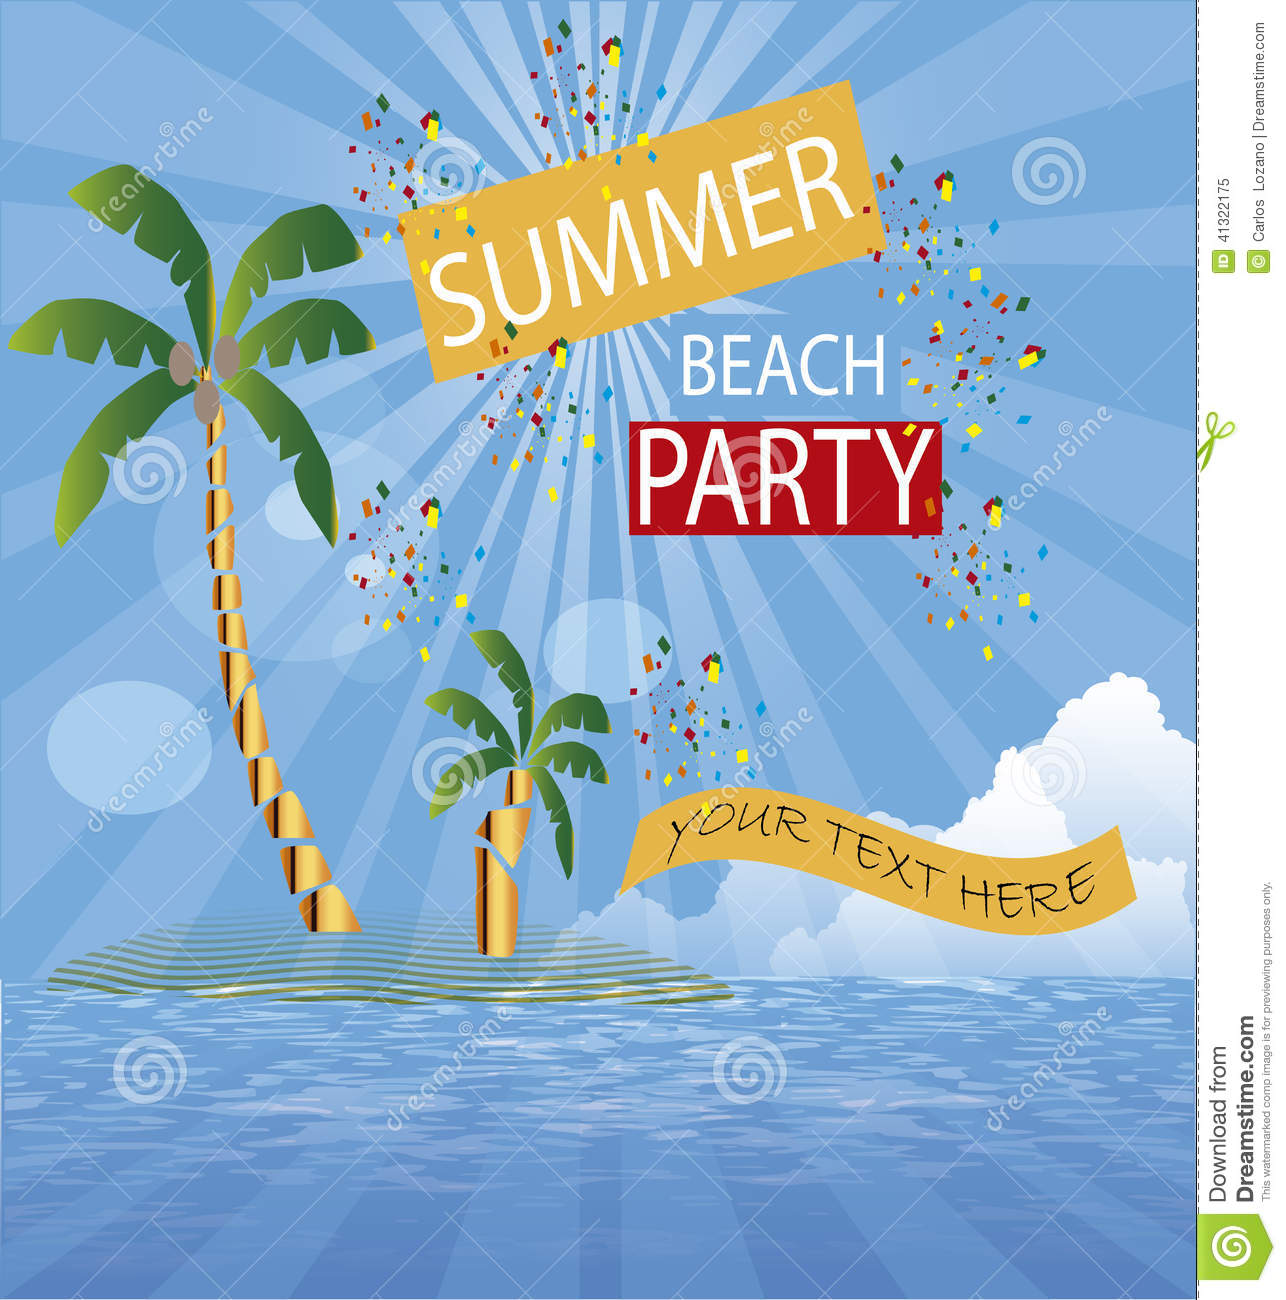 Party Island Beach: Background Surf Sommer Party Island Stock Vector